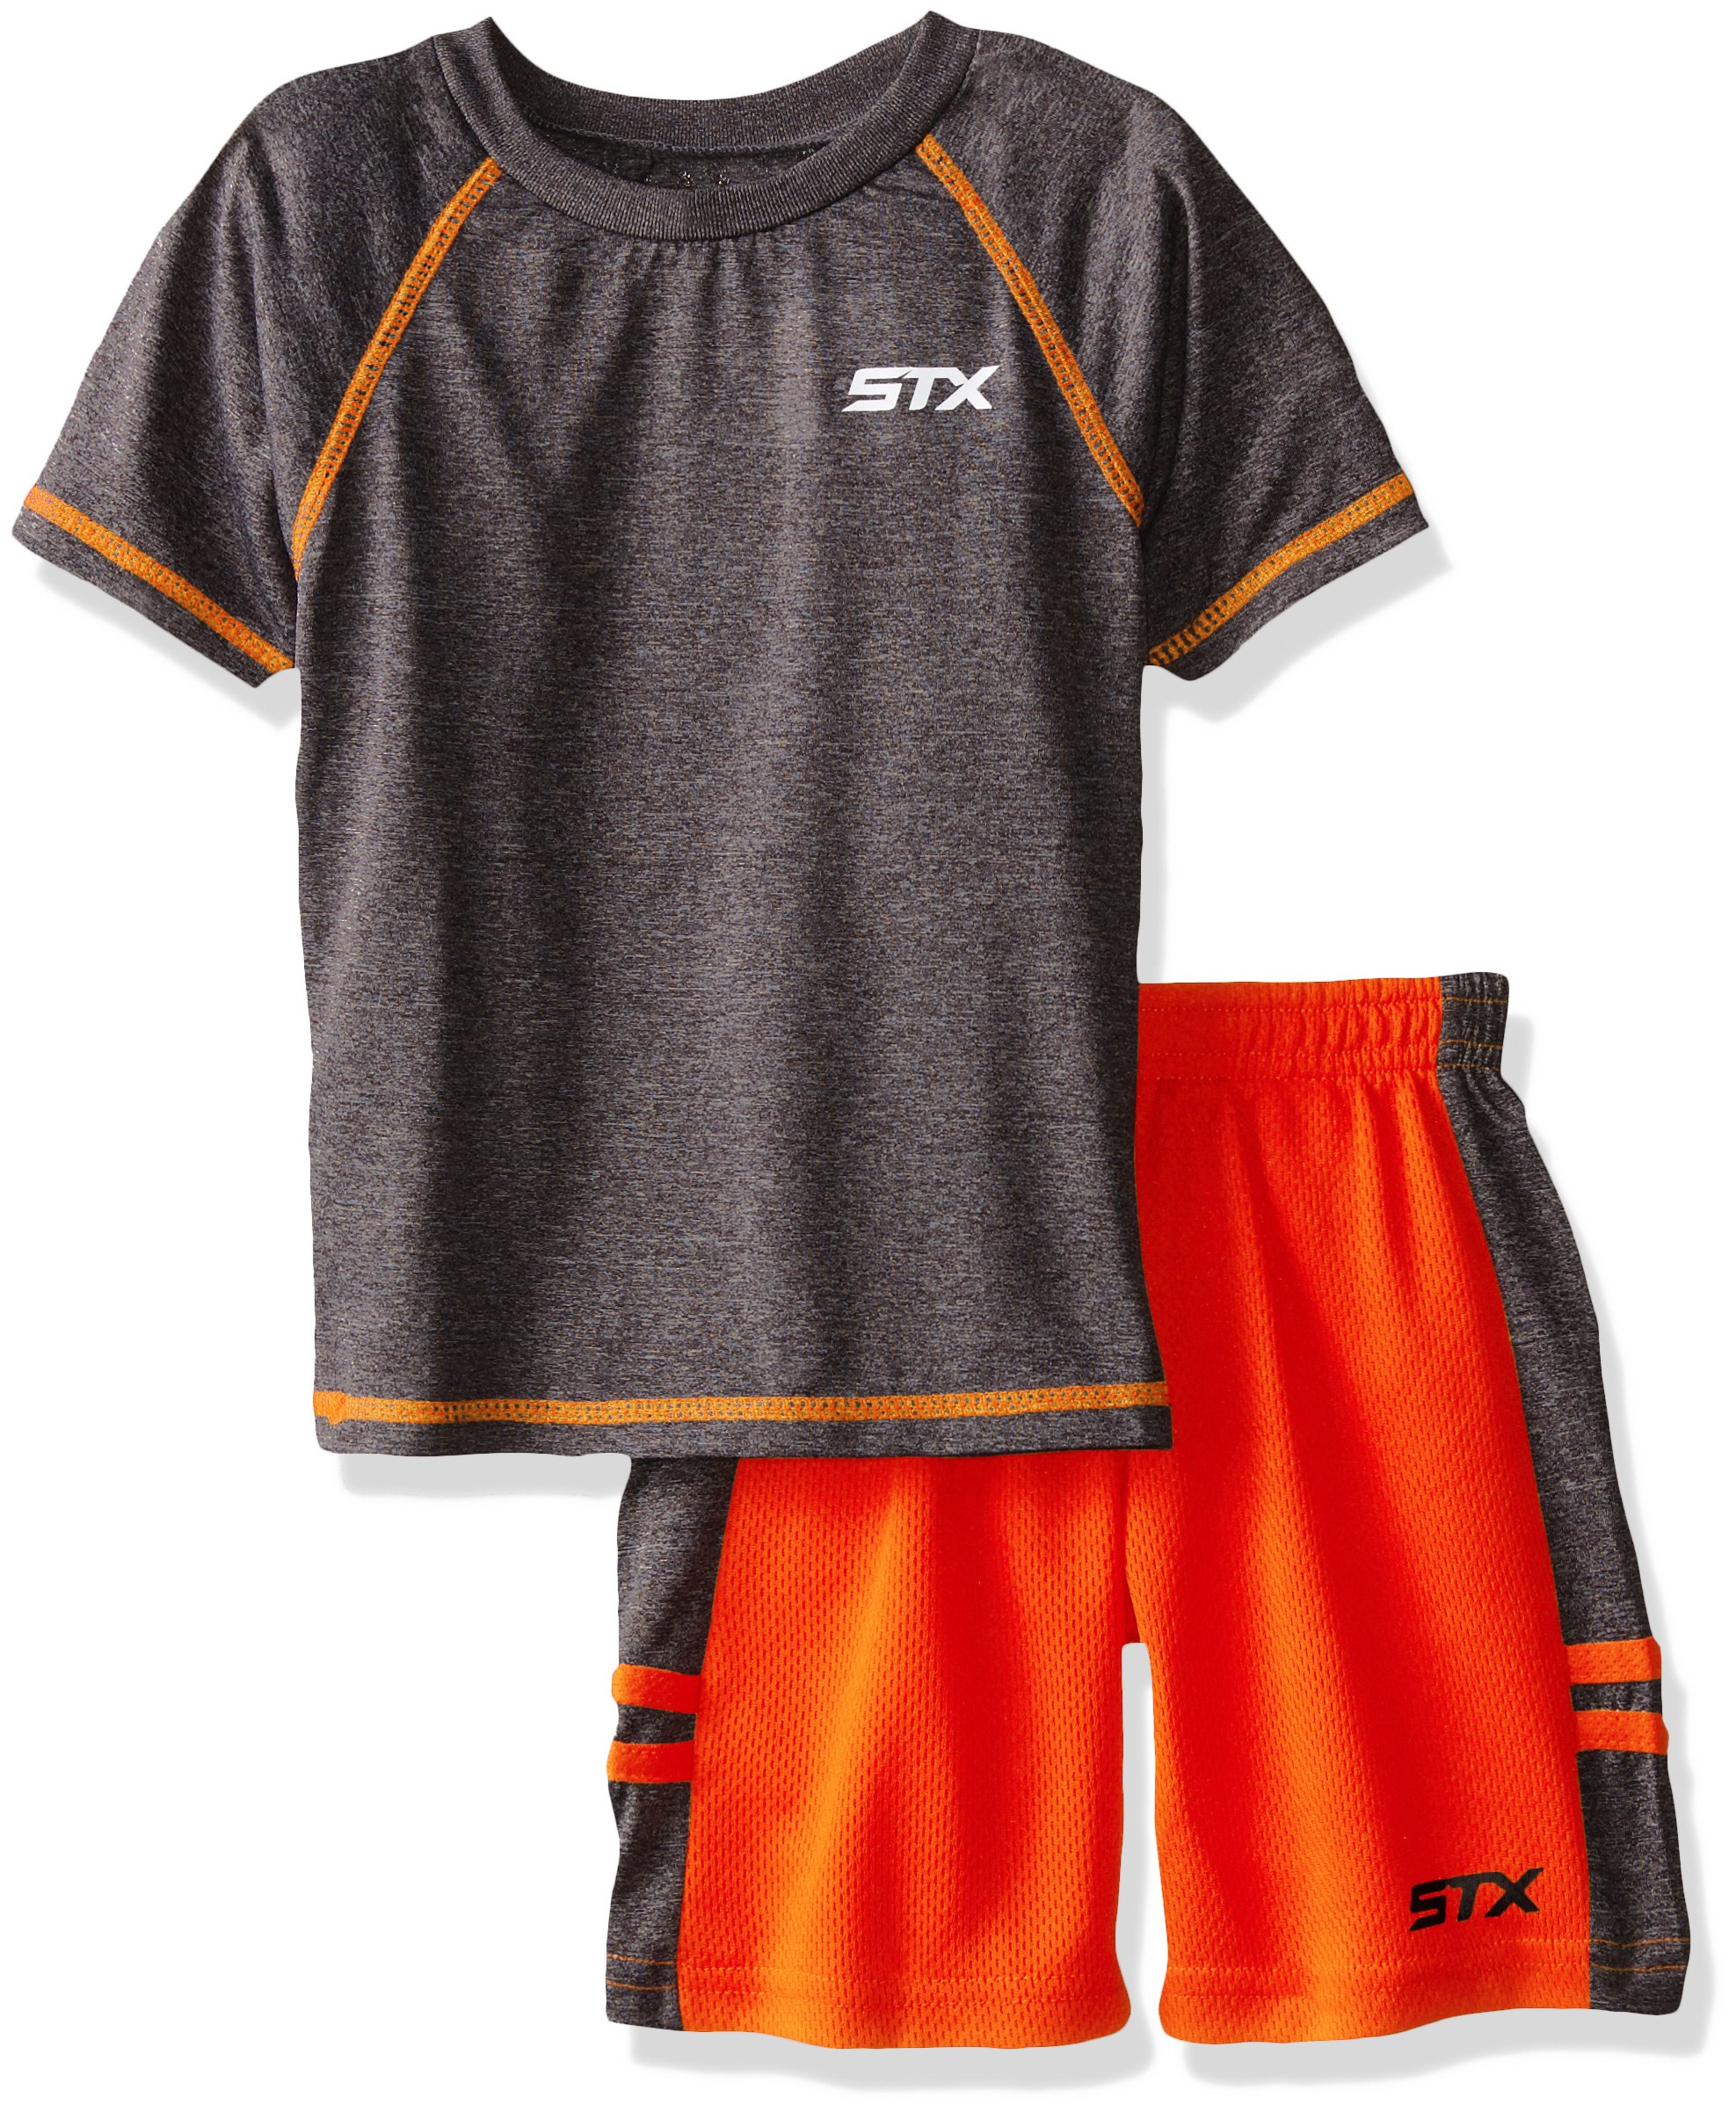 STX Big Boys' 2 Piece Performance Athletic T-Shirt and Short Set, Neon Orange, 8 by STX